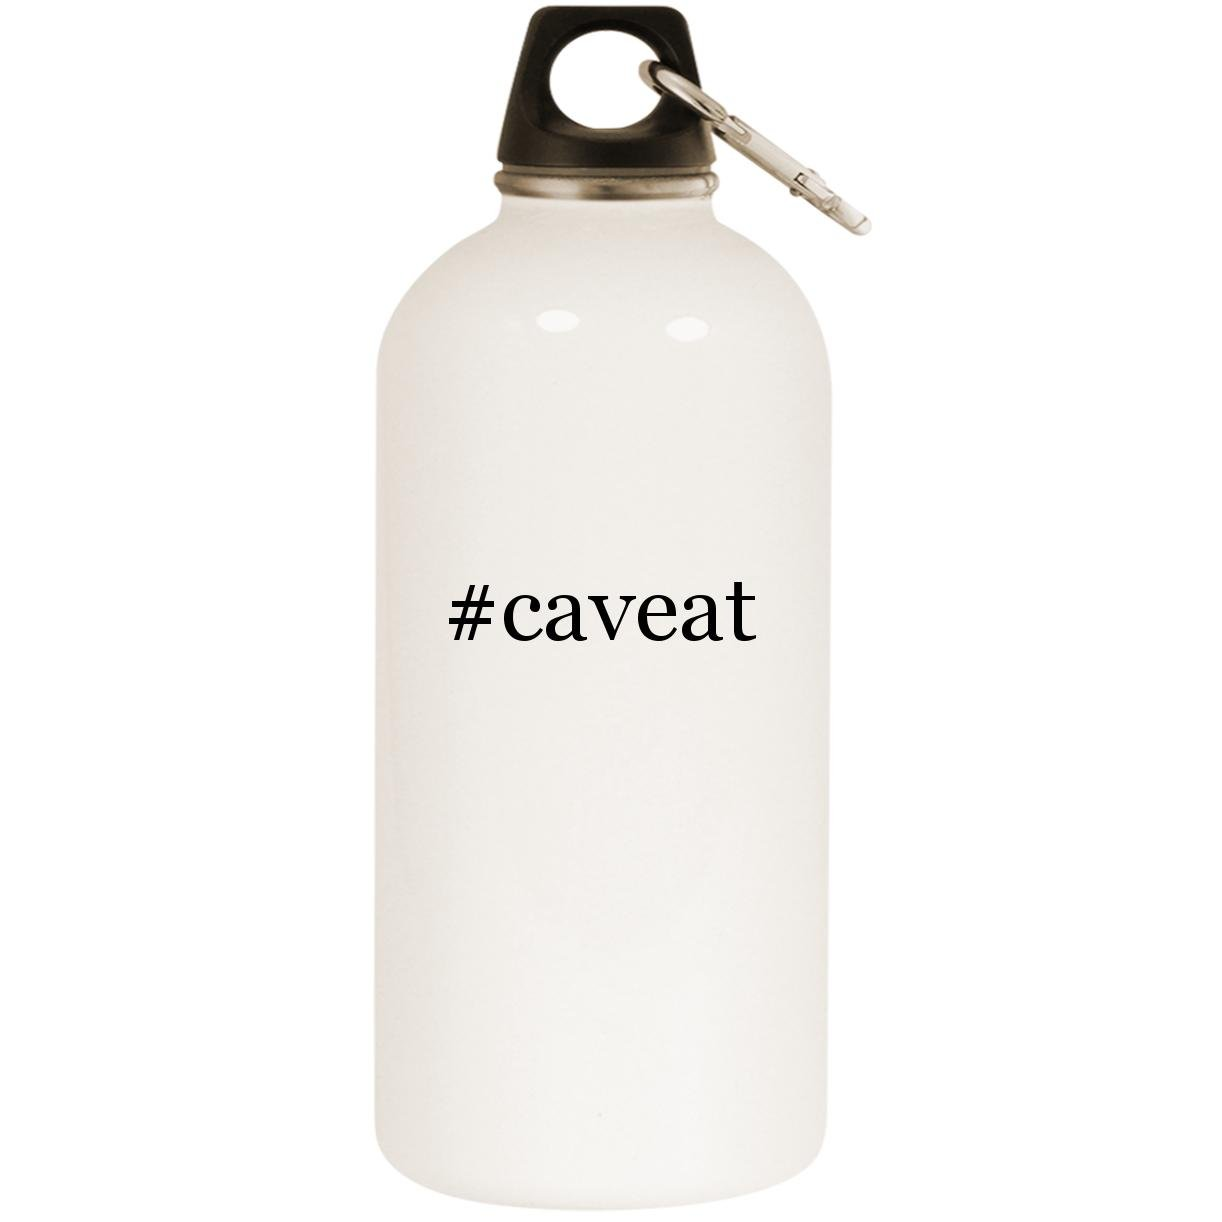 #caveat - White Hashtag 20oz Stainless Steel Water Bottle with Carabiner